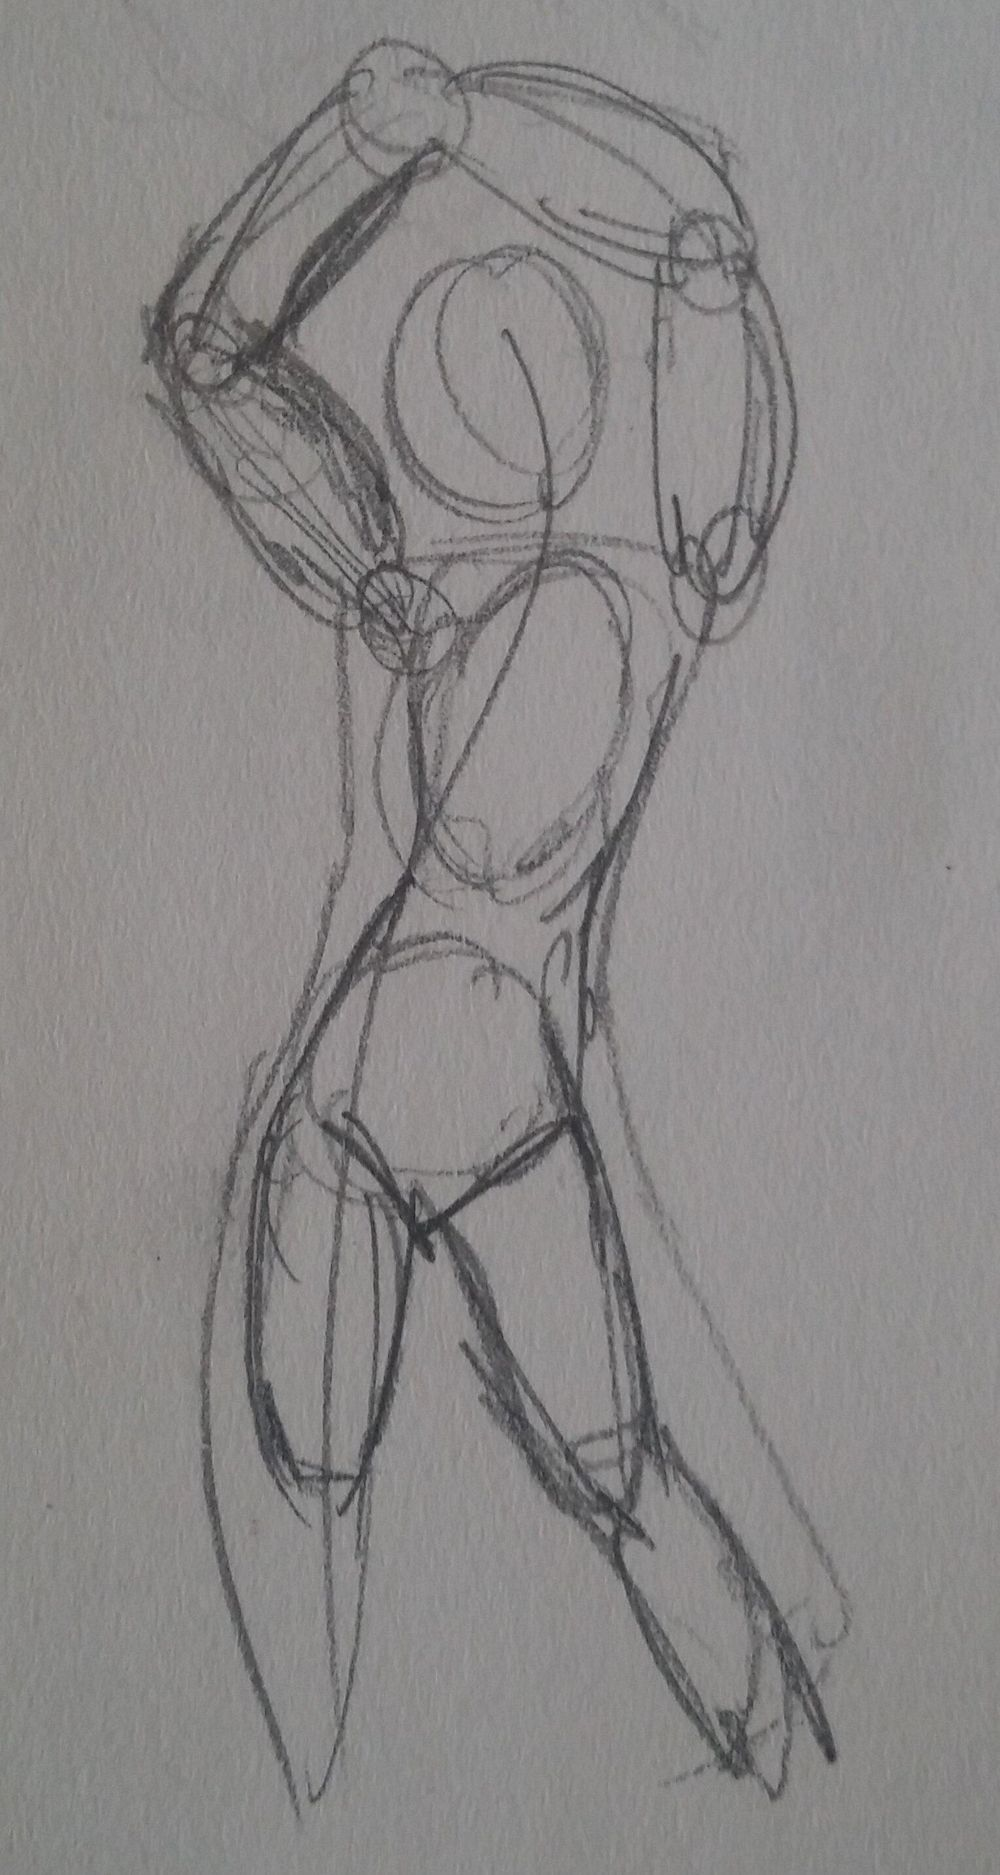 Gestures!  - image 1 - student project